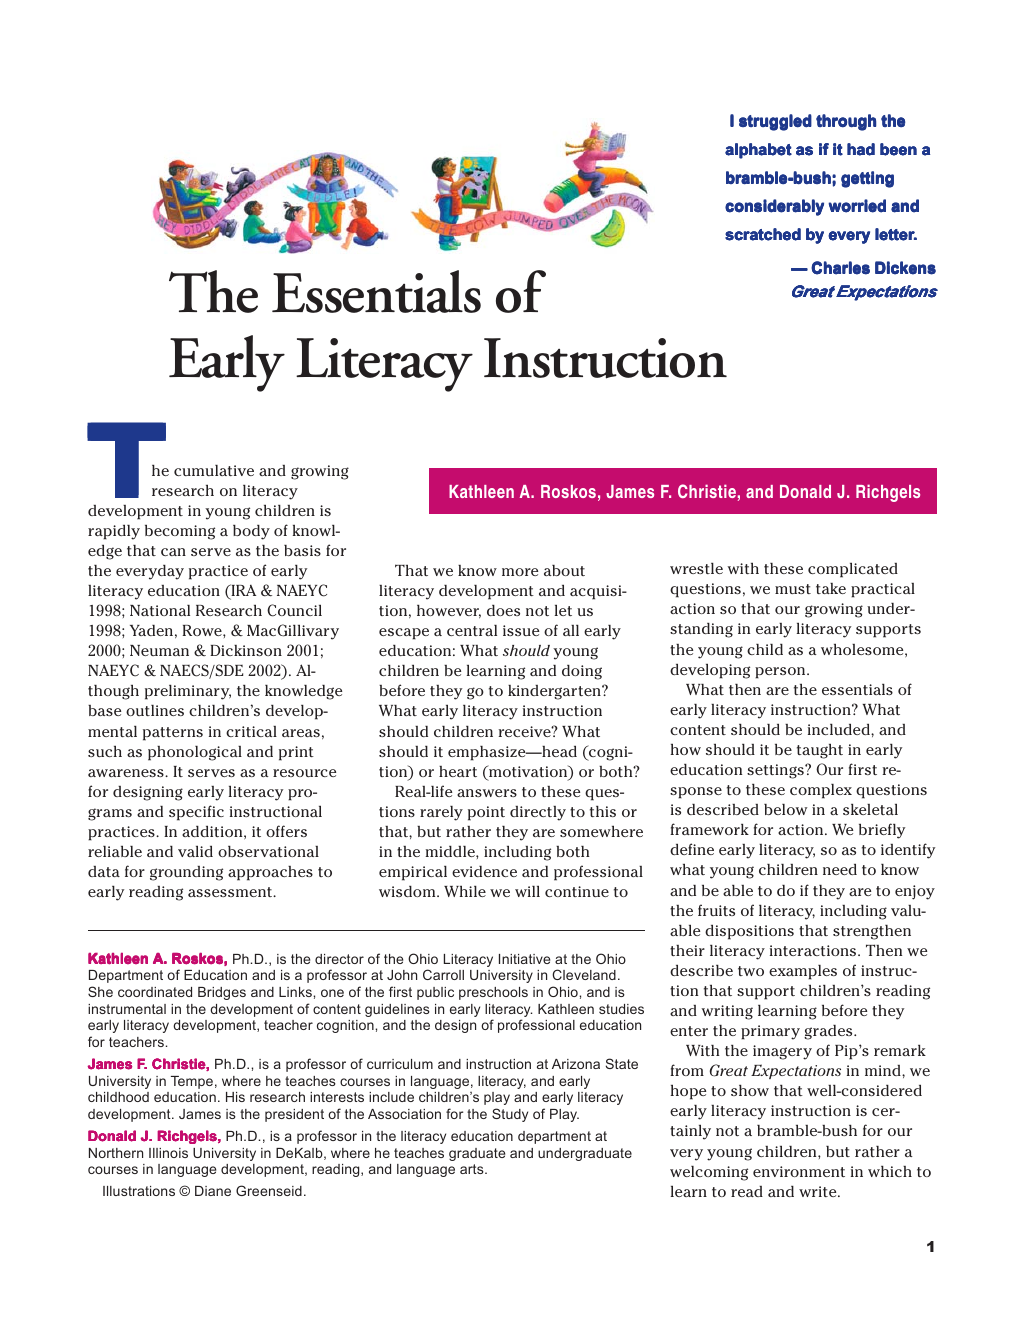 fostering literacy development in young children